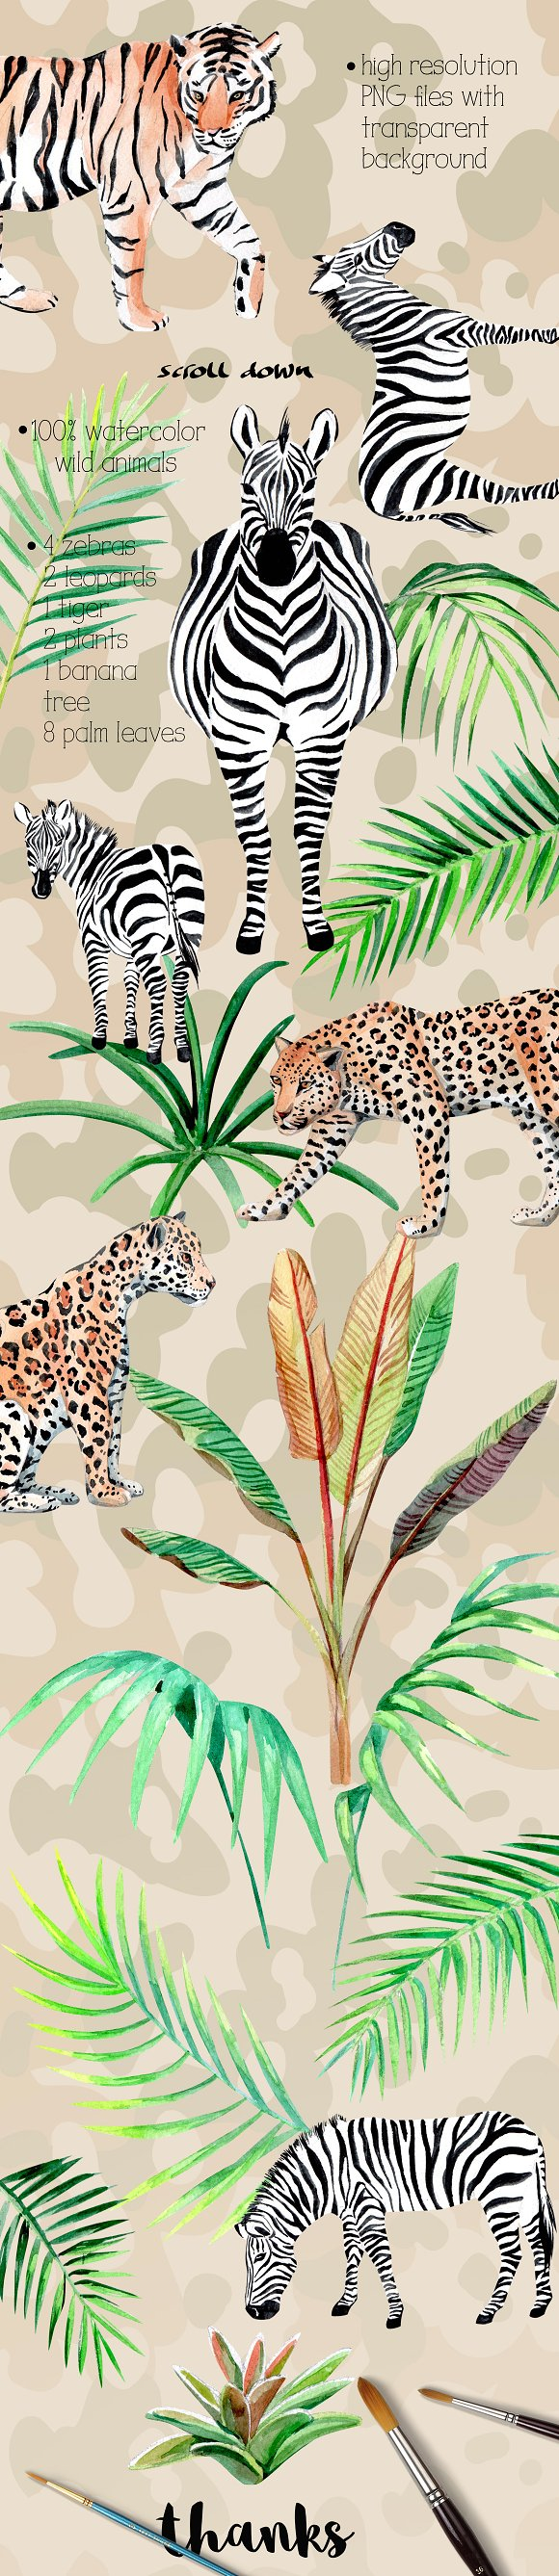 Wild and free. Watercolor animals.